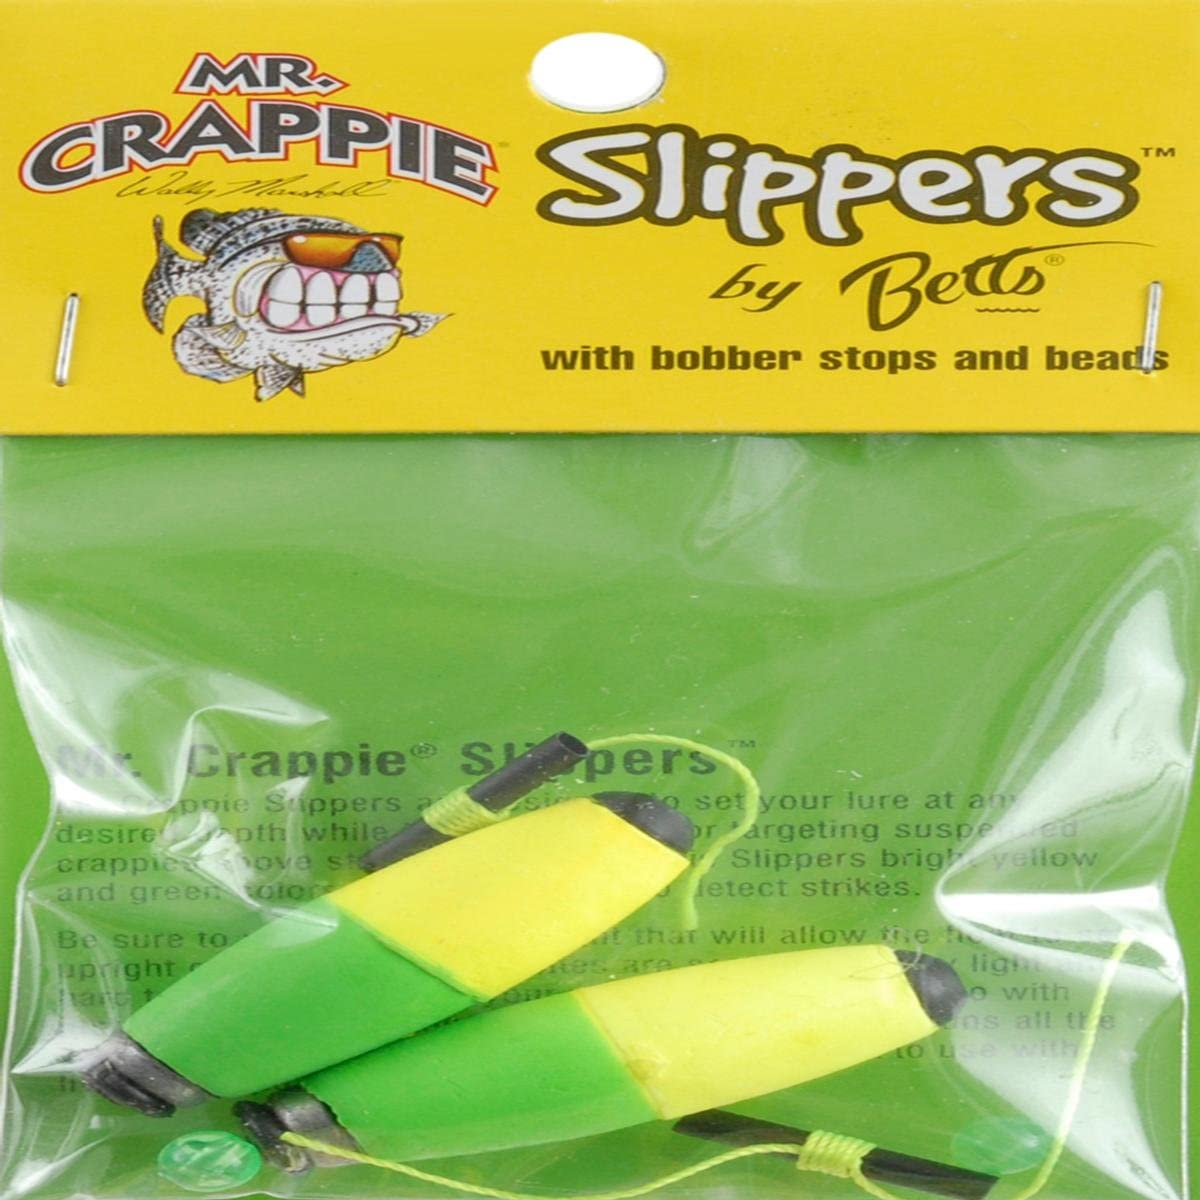 """New Mr Crappie Snappers Snap-On Foam Cigar Weighted Float 2.5/"""" 6Pk B2BW-50YG"""